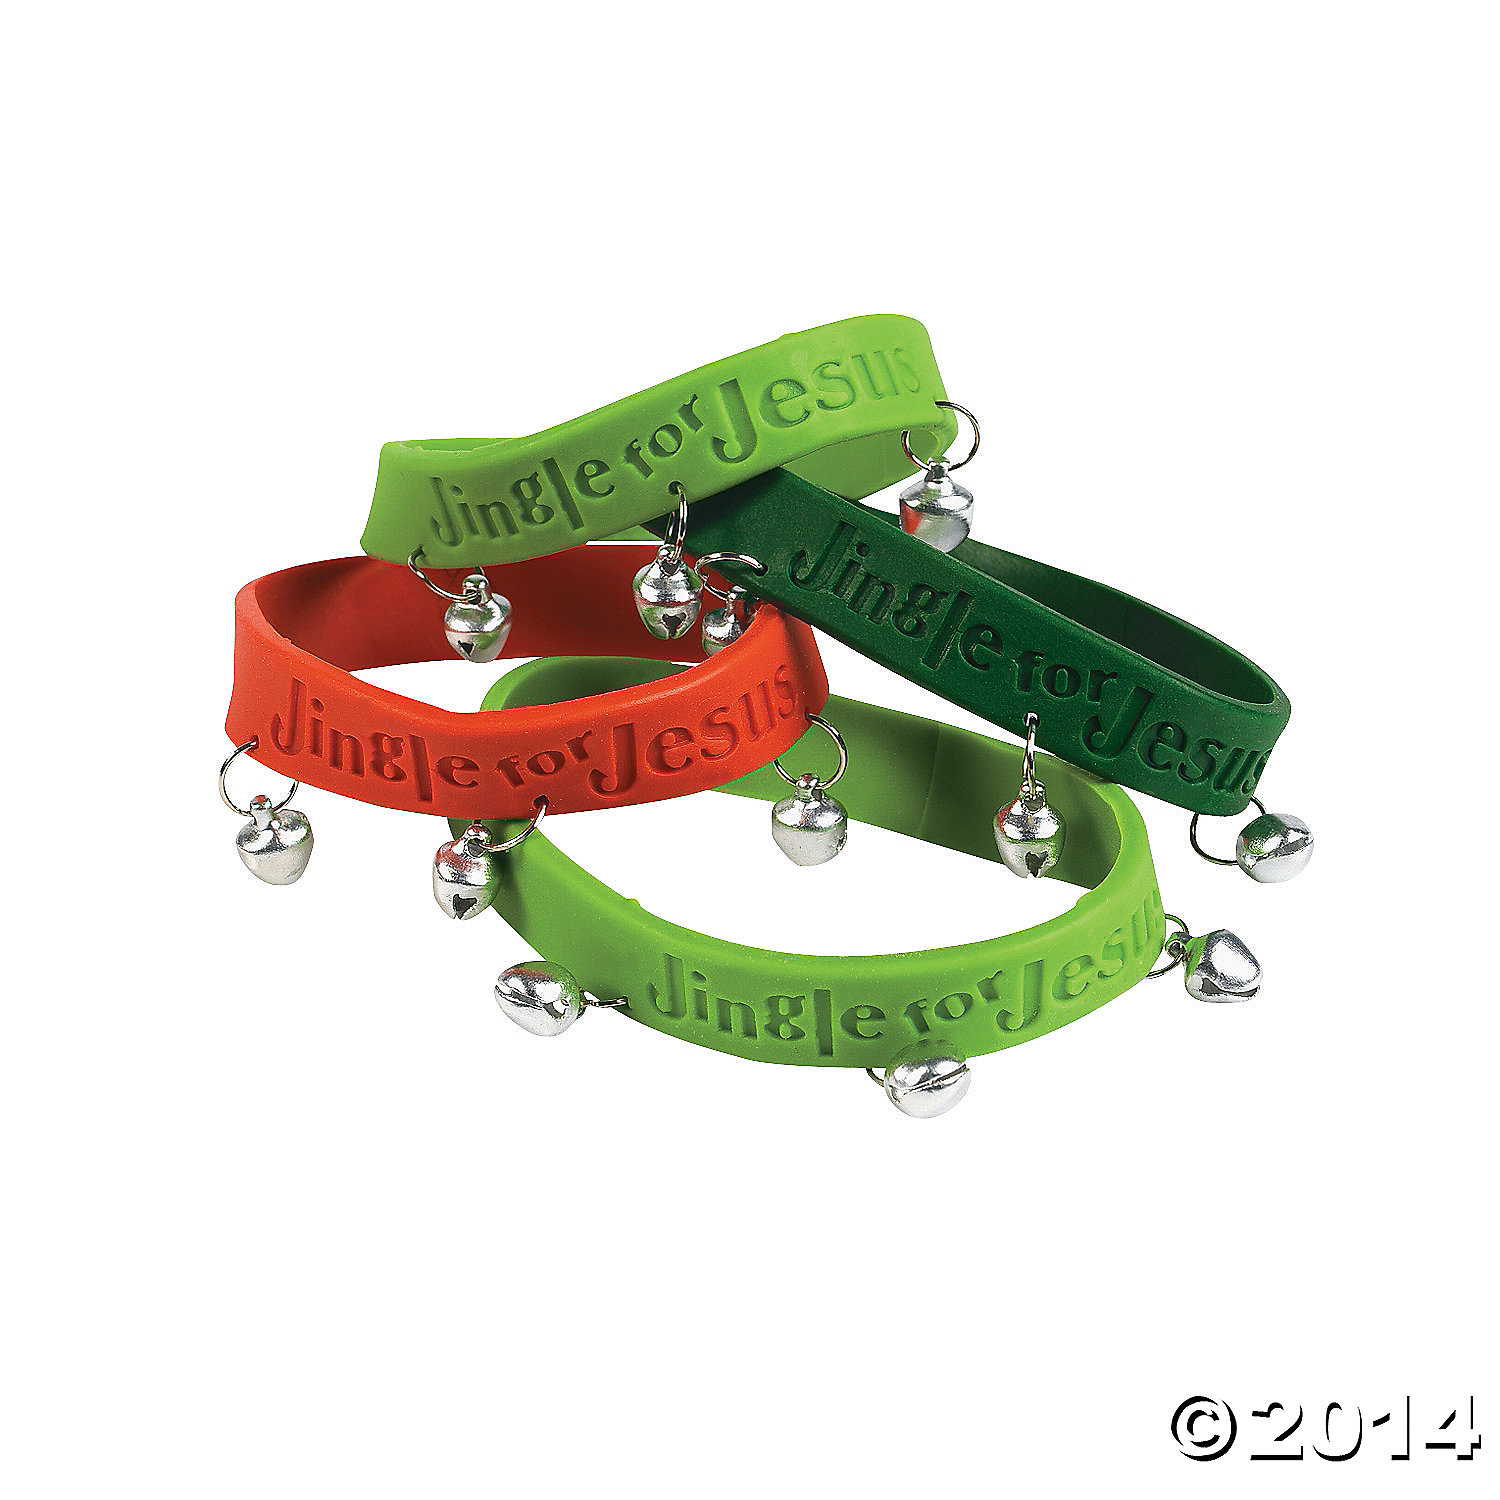 Rubber Jingle For Jesus Bracelets with Bells